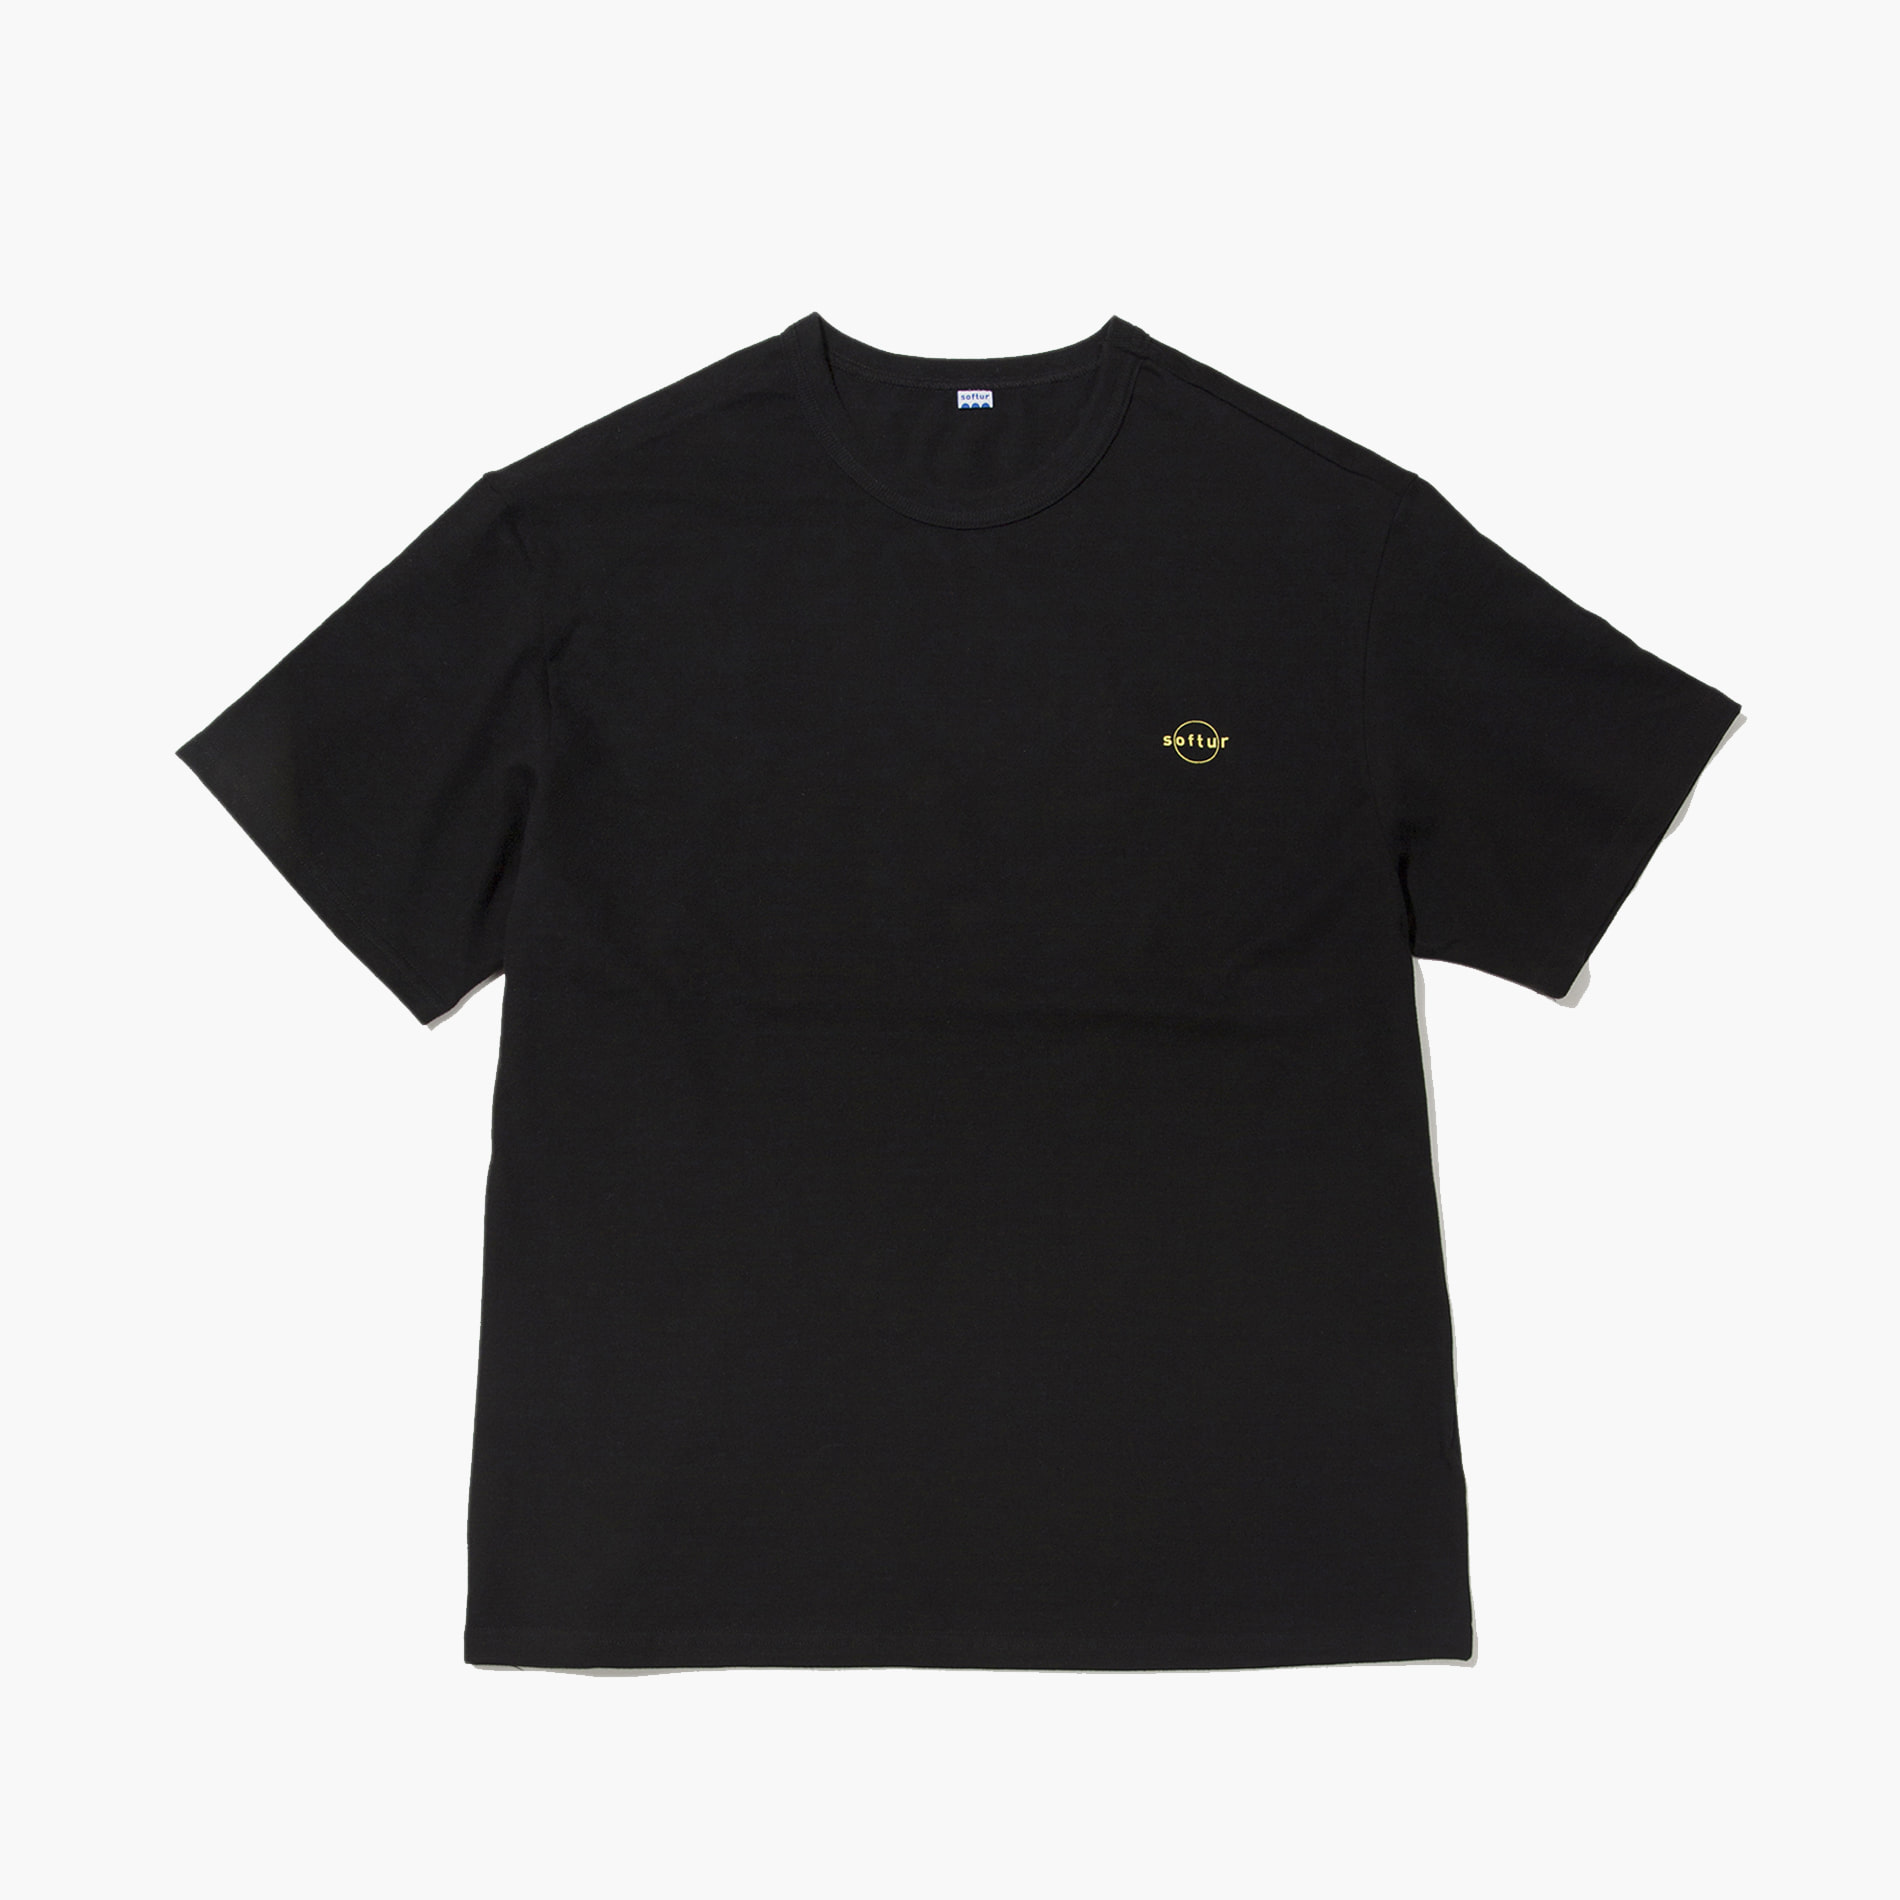 SOFTUR T-SHIRT (BLACK)